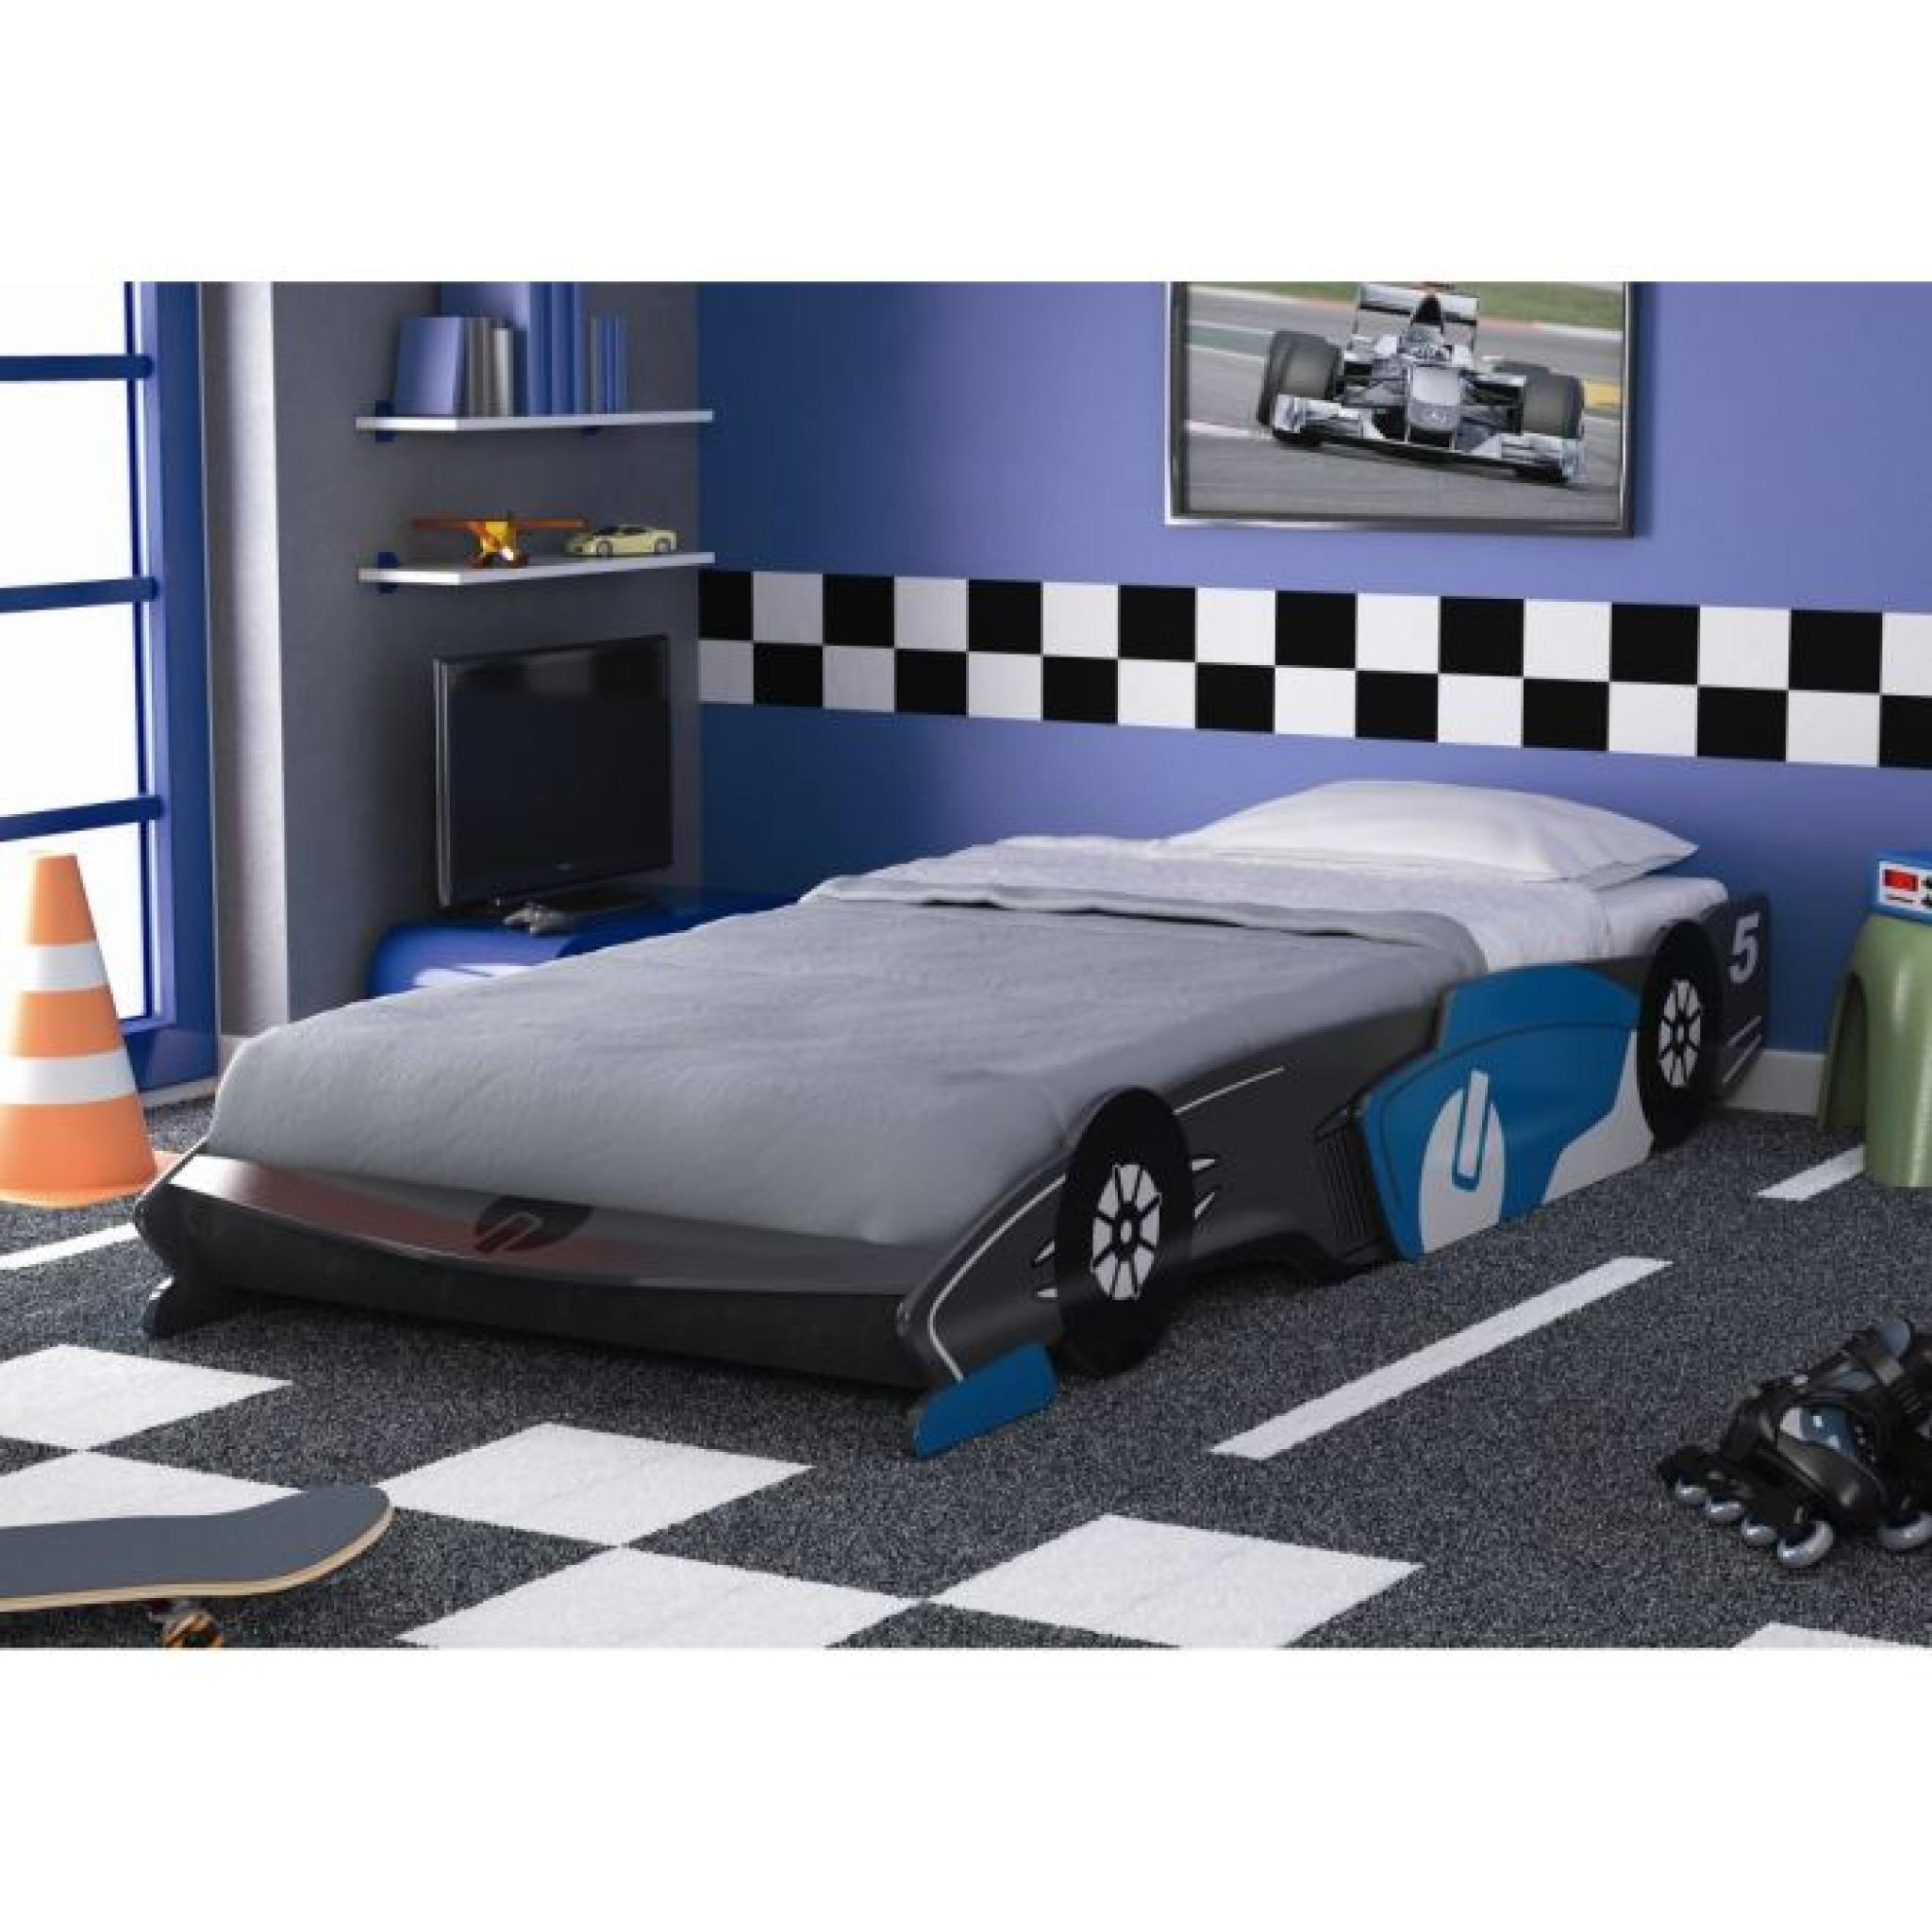 fast lit enfant voiture gris et bleu 90x190 200cm achat. Black Bedroom Furniture Sets. Home Design Ideas